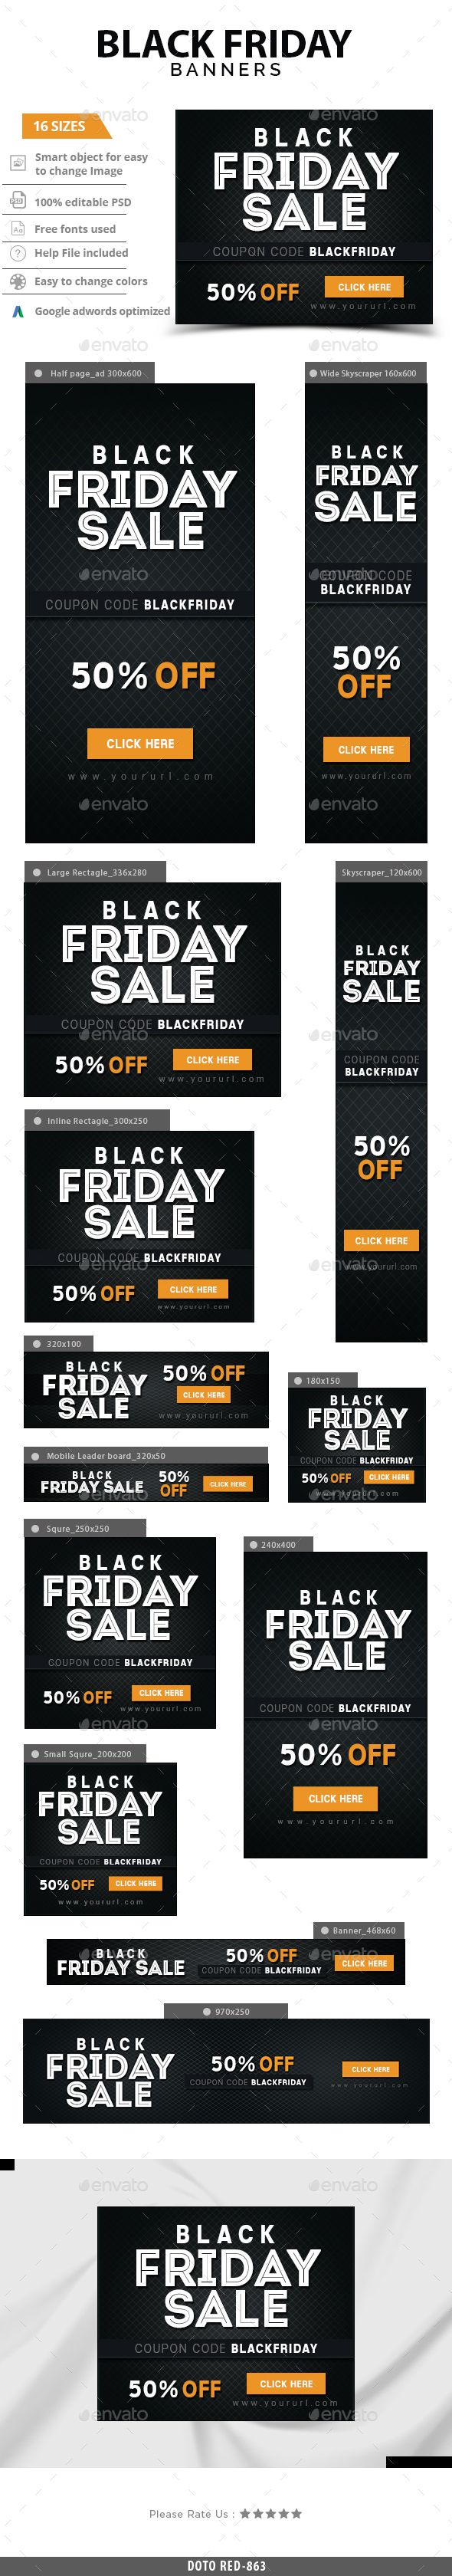 Blackfriday Web Banners Template PSD #design #ads Download: http://graphicriver.net/item/blackfriday-banners/13737246?ref=ksioks